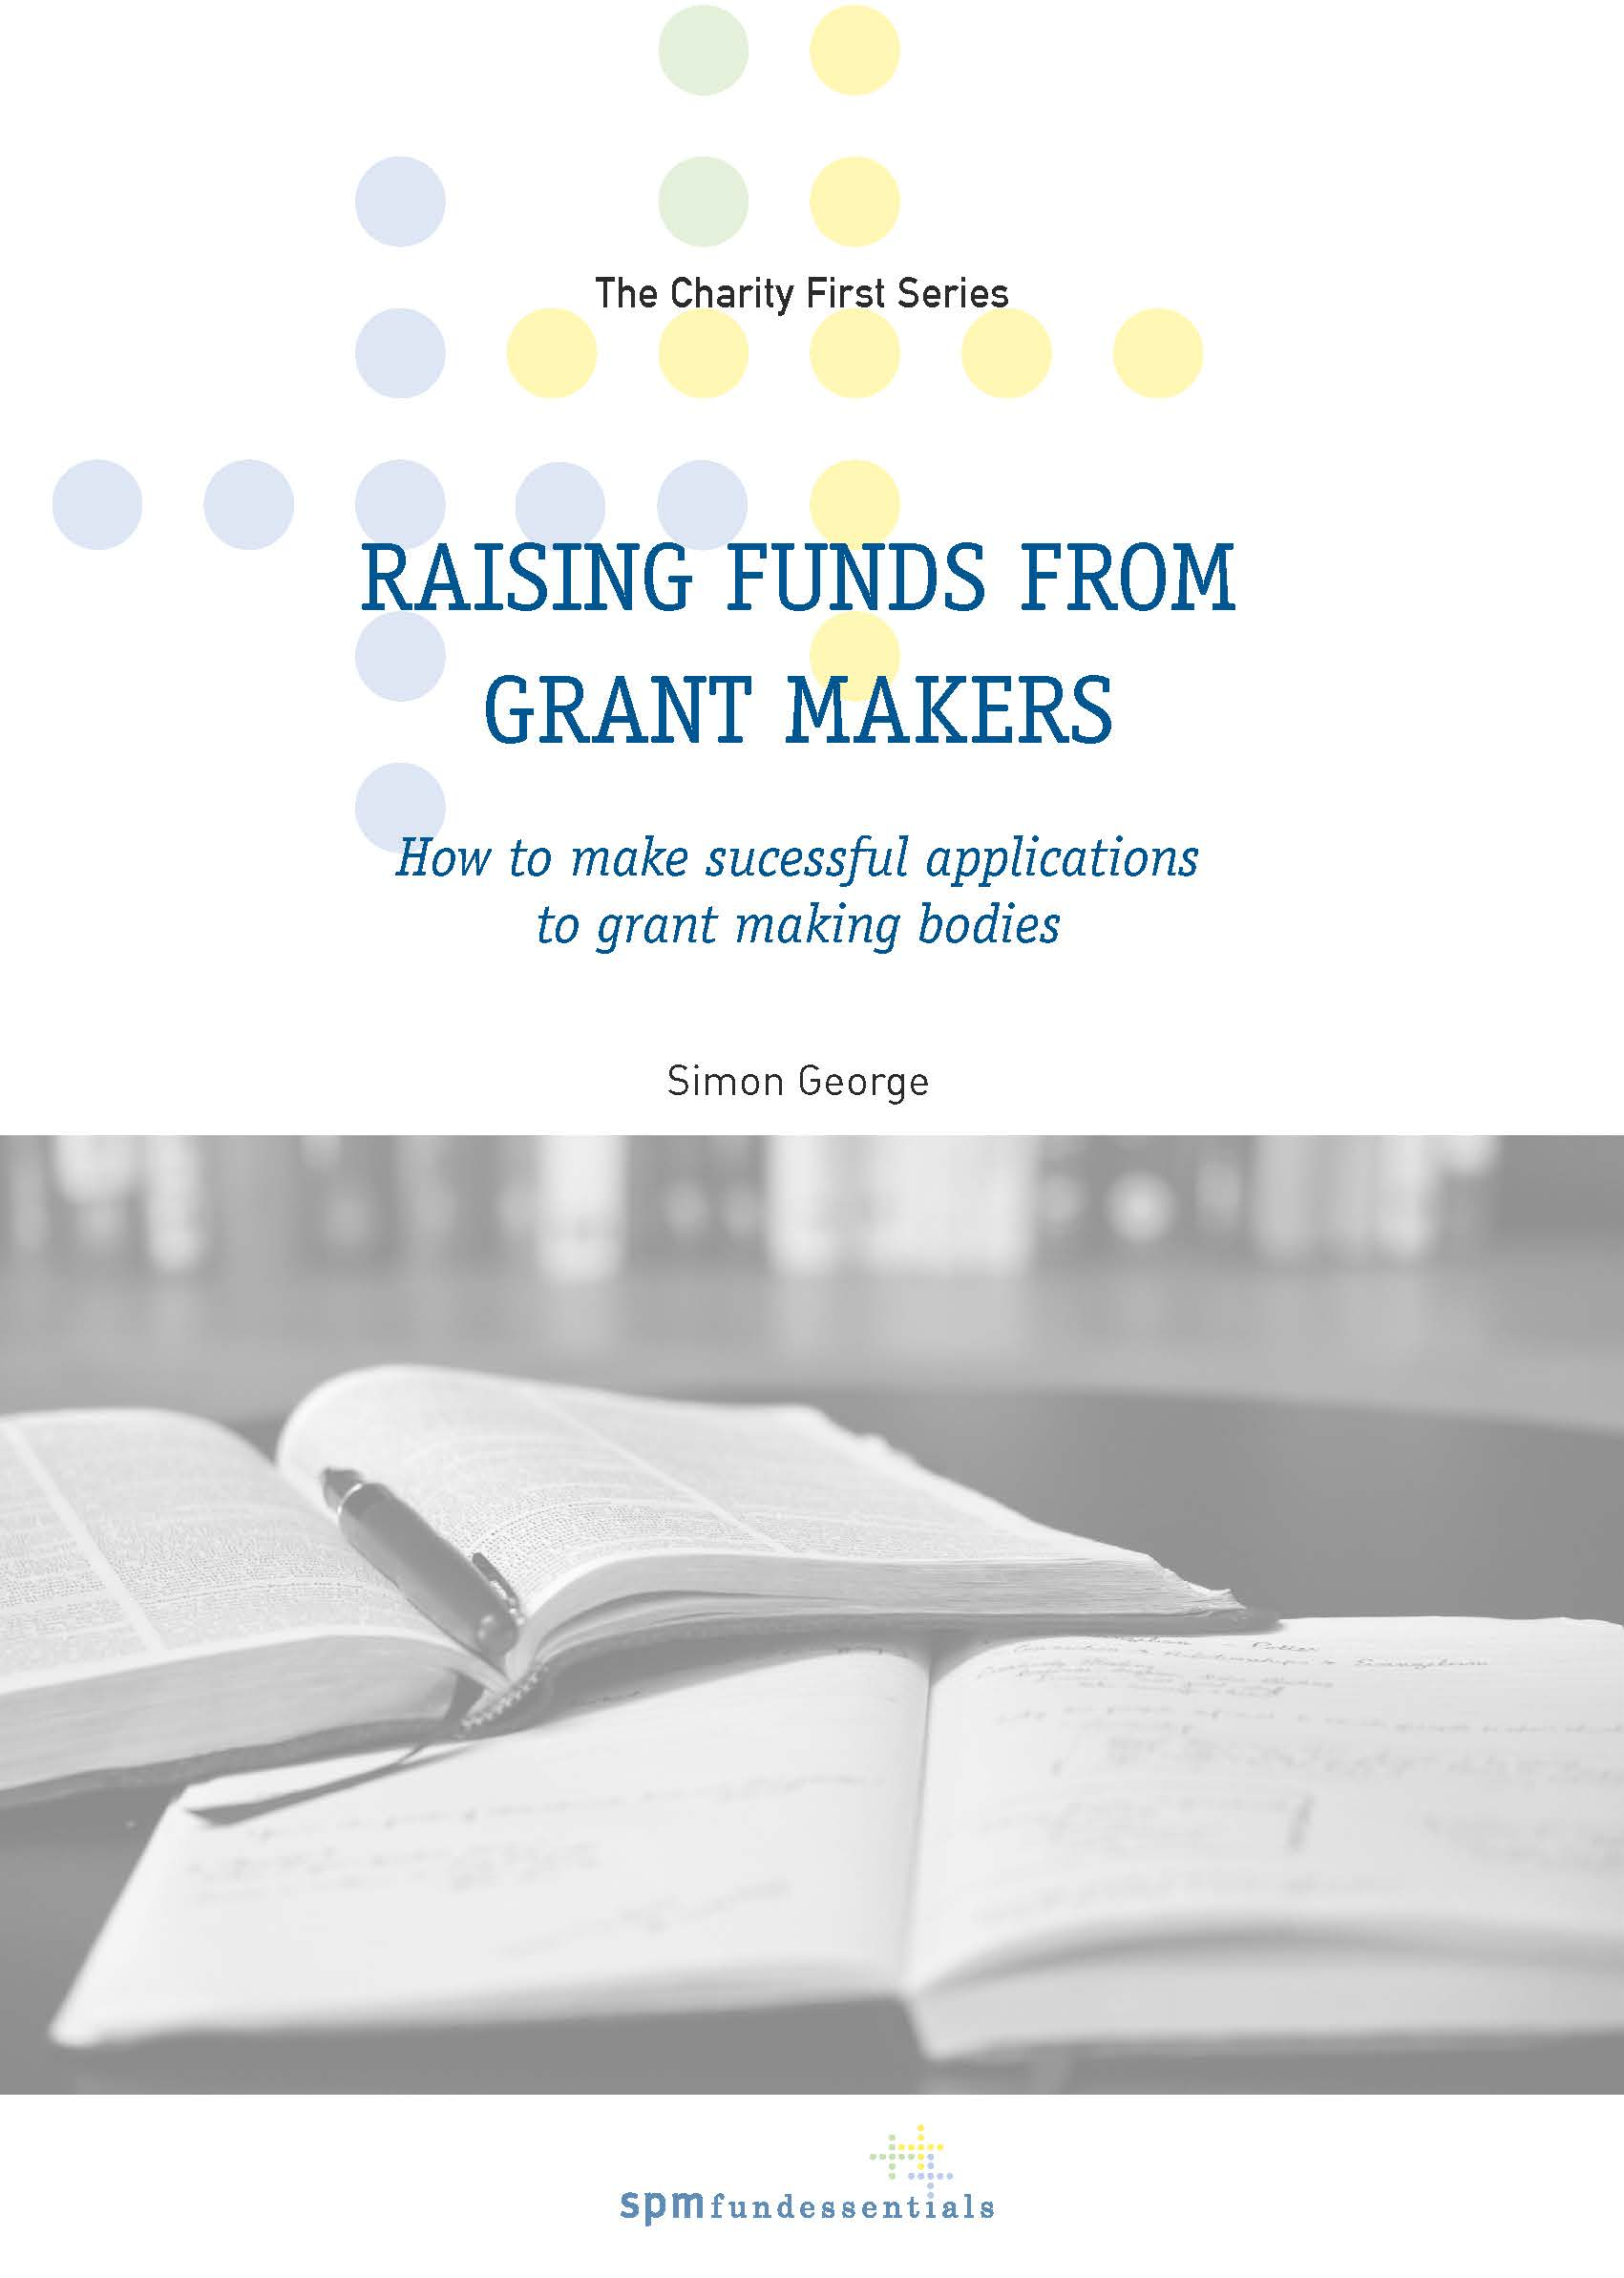 Raising Funds from Grant Makers